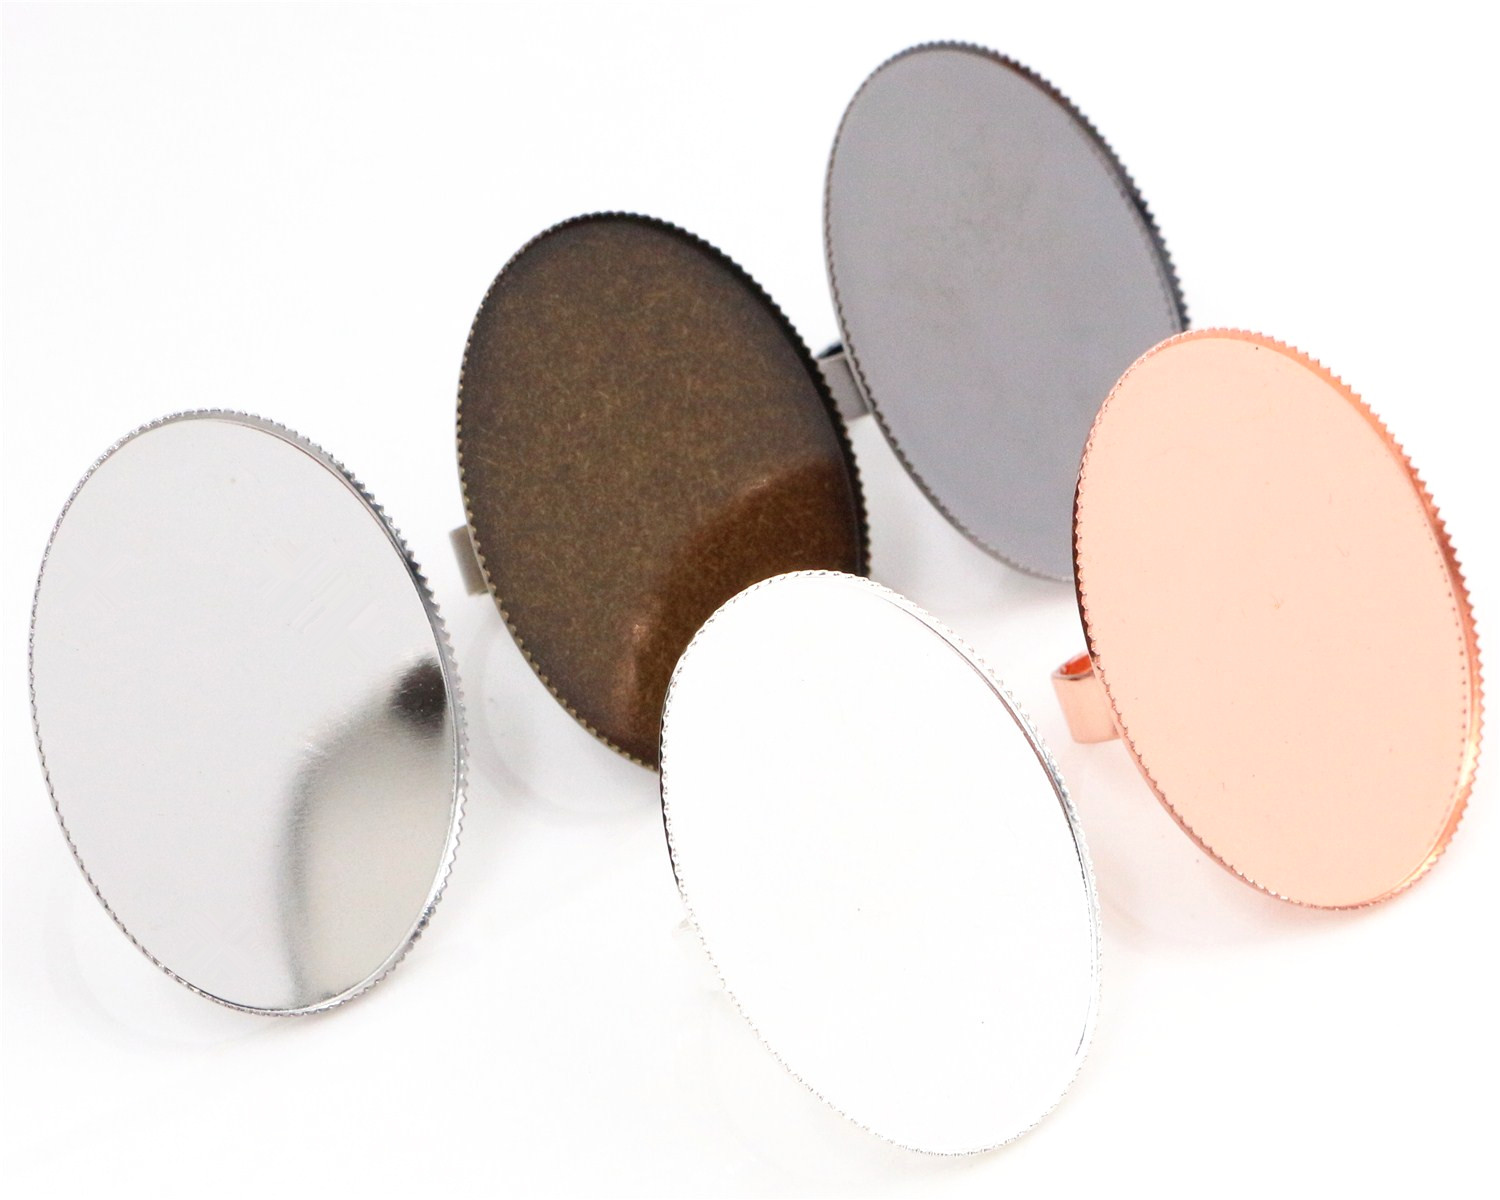 30x40mm 5pcs/lot 6 Colors Plated Brass Oval Adjustable Ring Settings Blank/Base,Fit 30x40mm Glass Cabochons